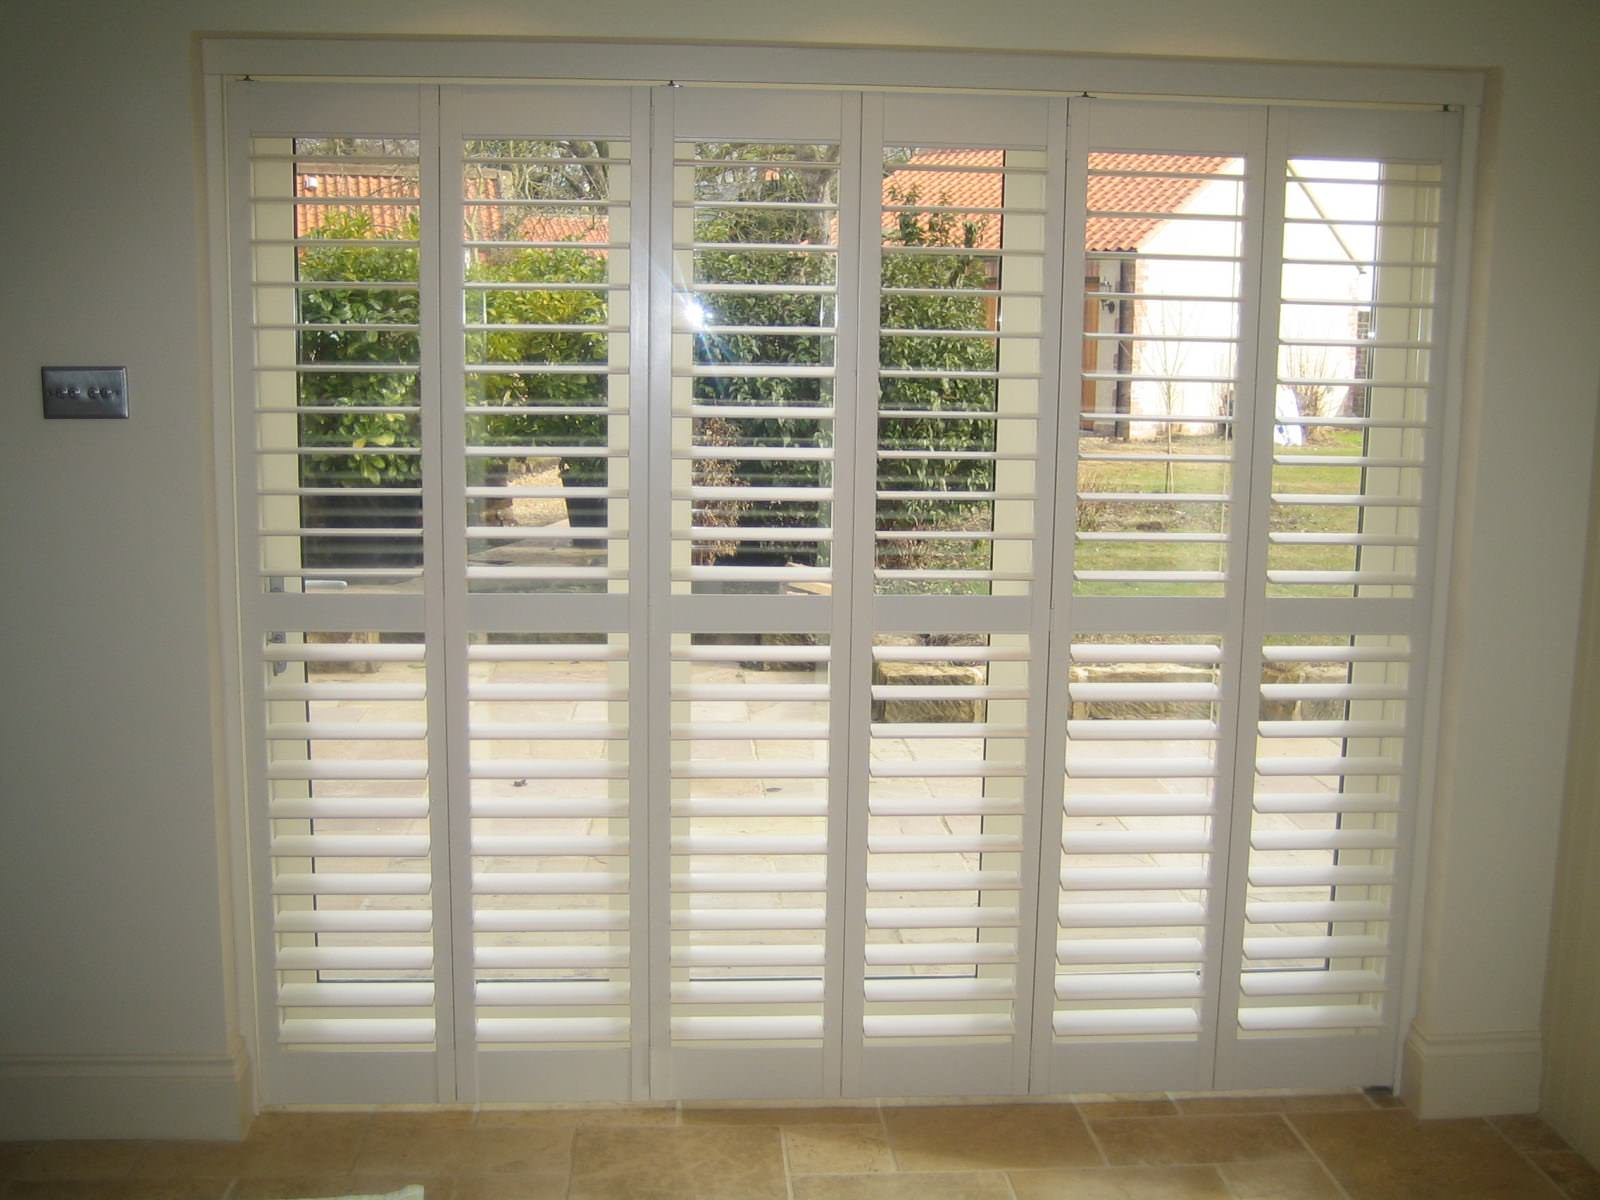 5 Benefits Of Tracked Shutters For Bifold Doors Shuttersouth